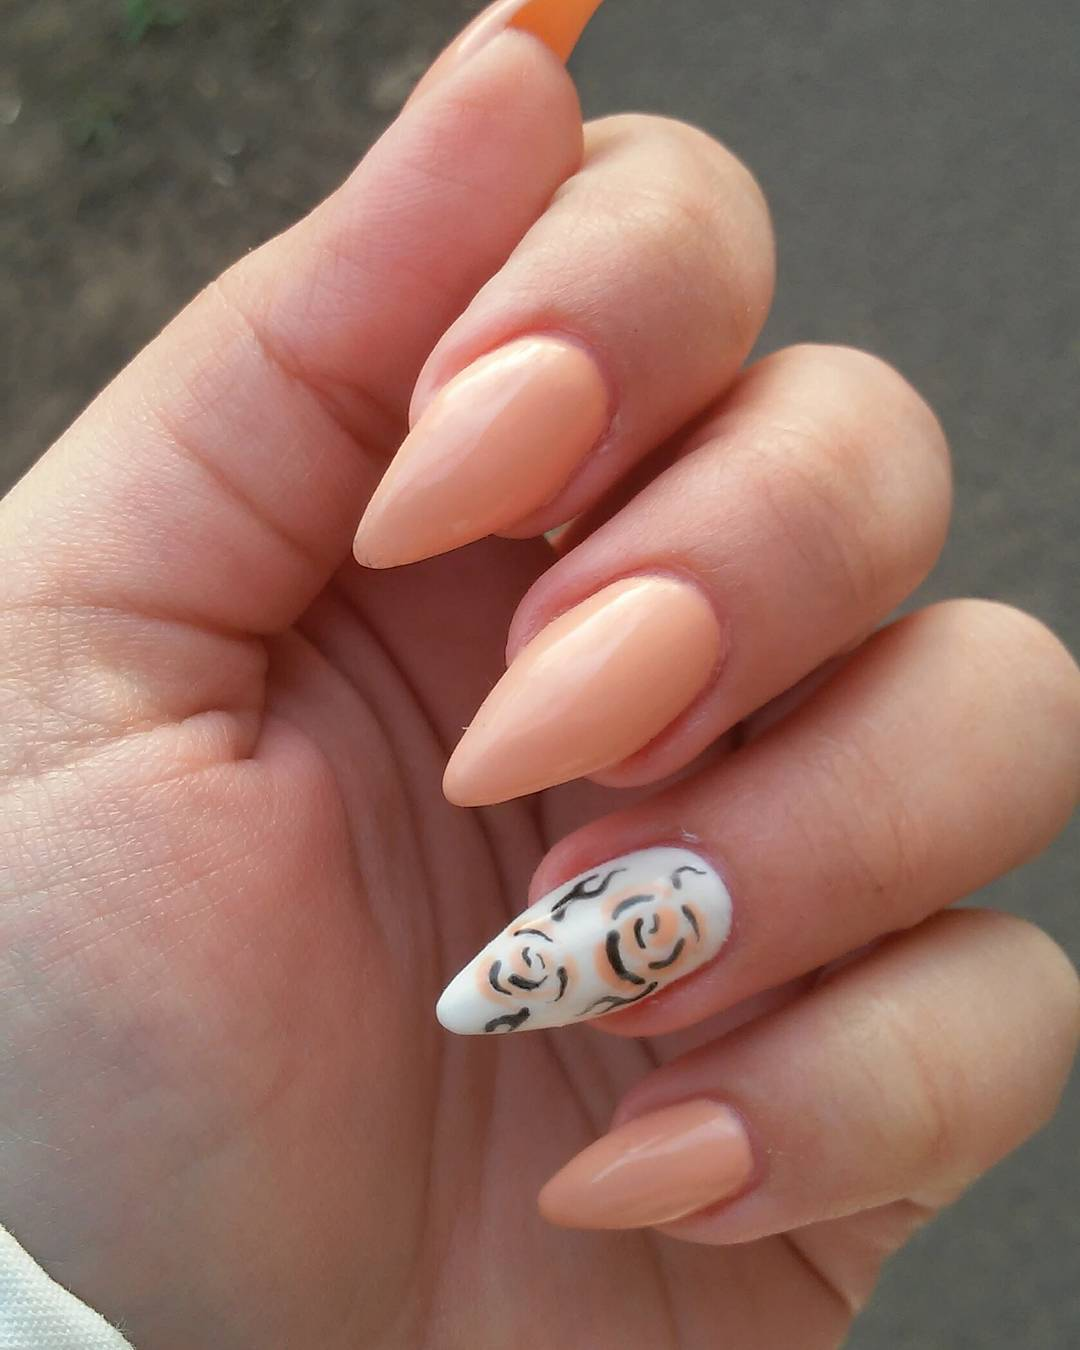 Art Design Ideas : Peach nail art designs ideas design trends